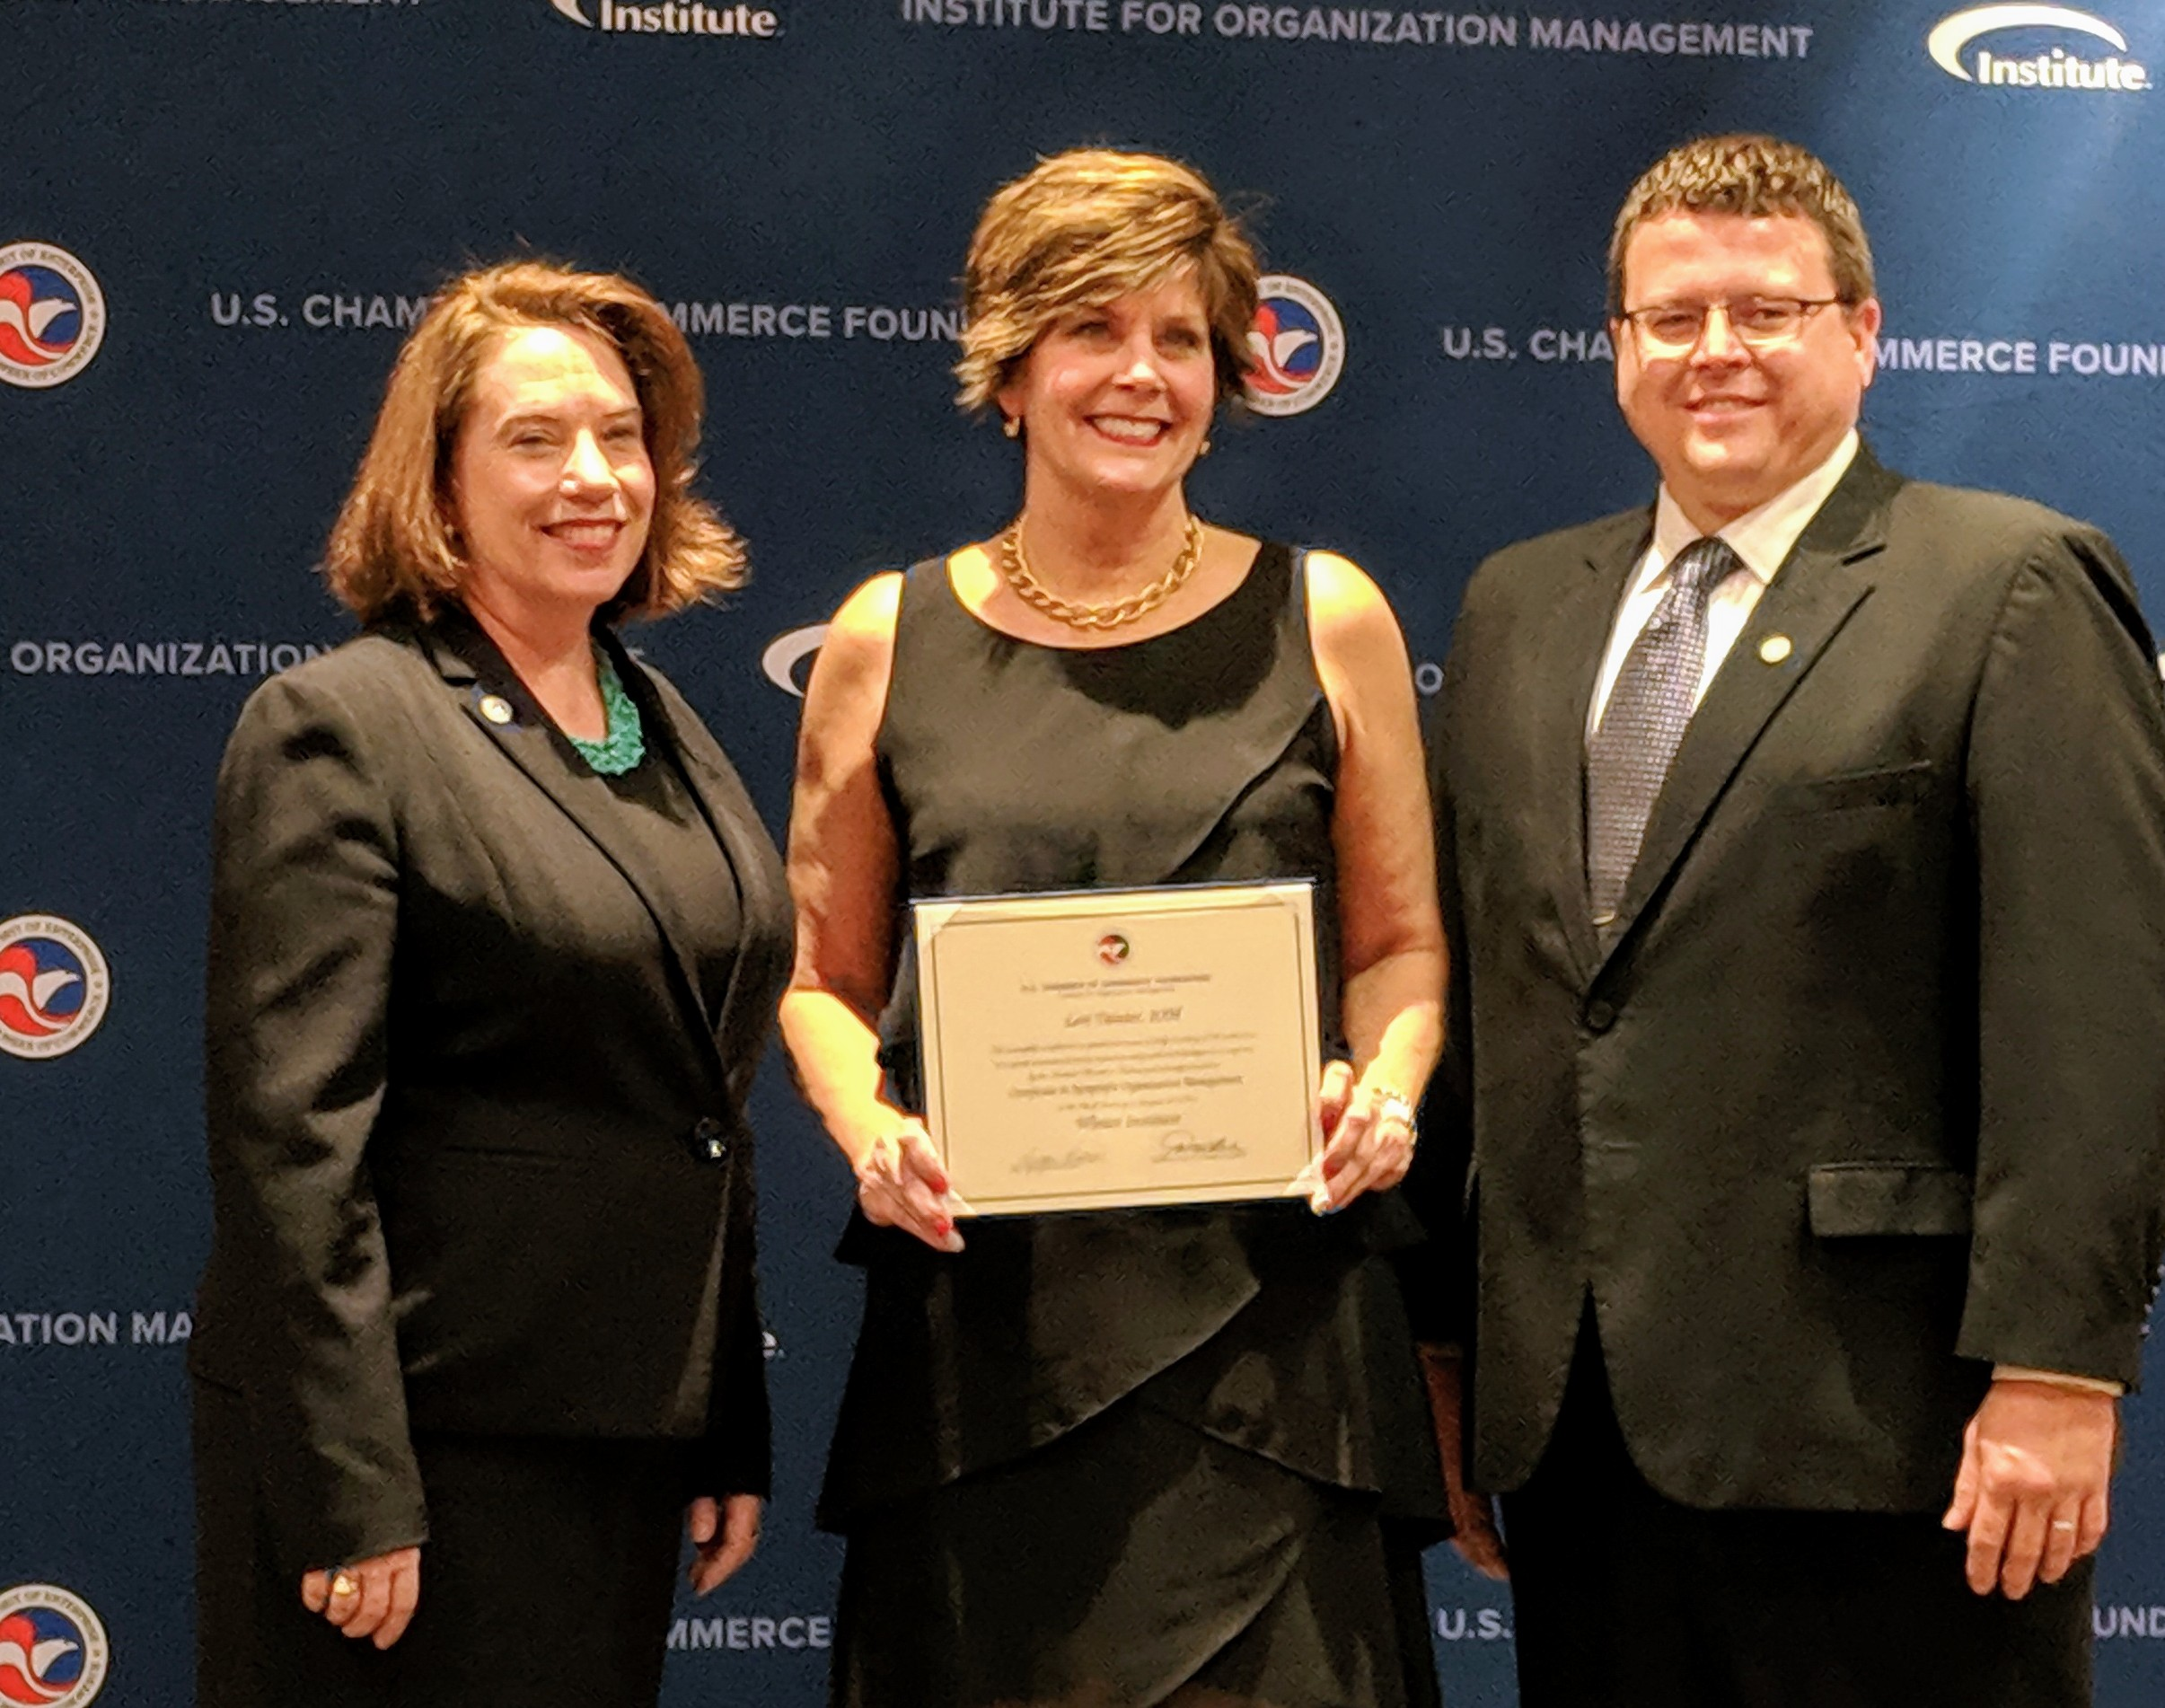 Image for Lori Tainter, IOM of Greater St. Charles County Chamber of Commerce Graduates from Institute for Organization Management